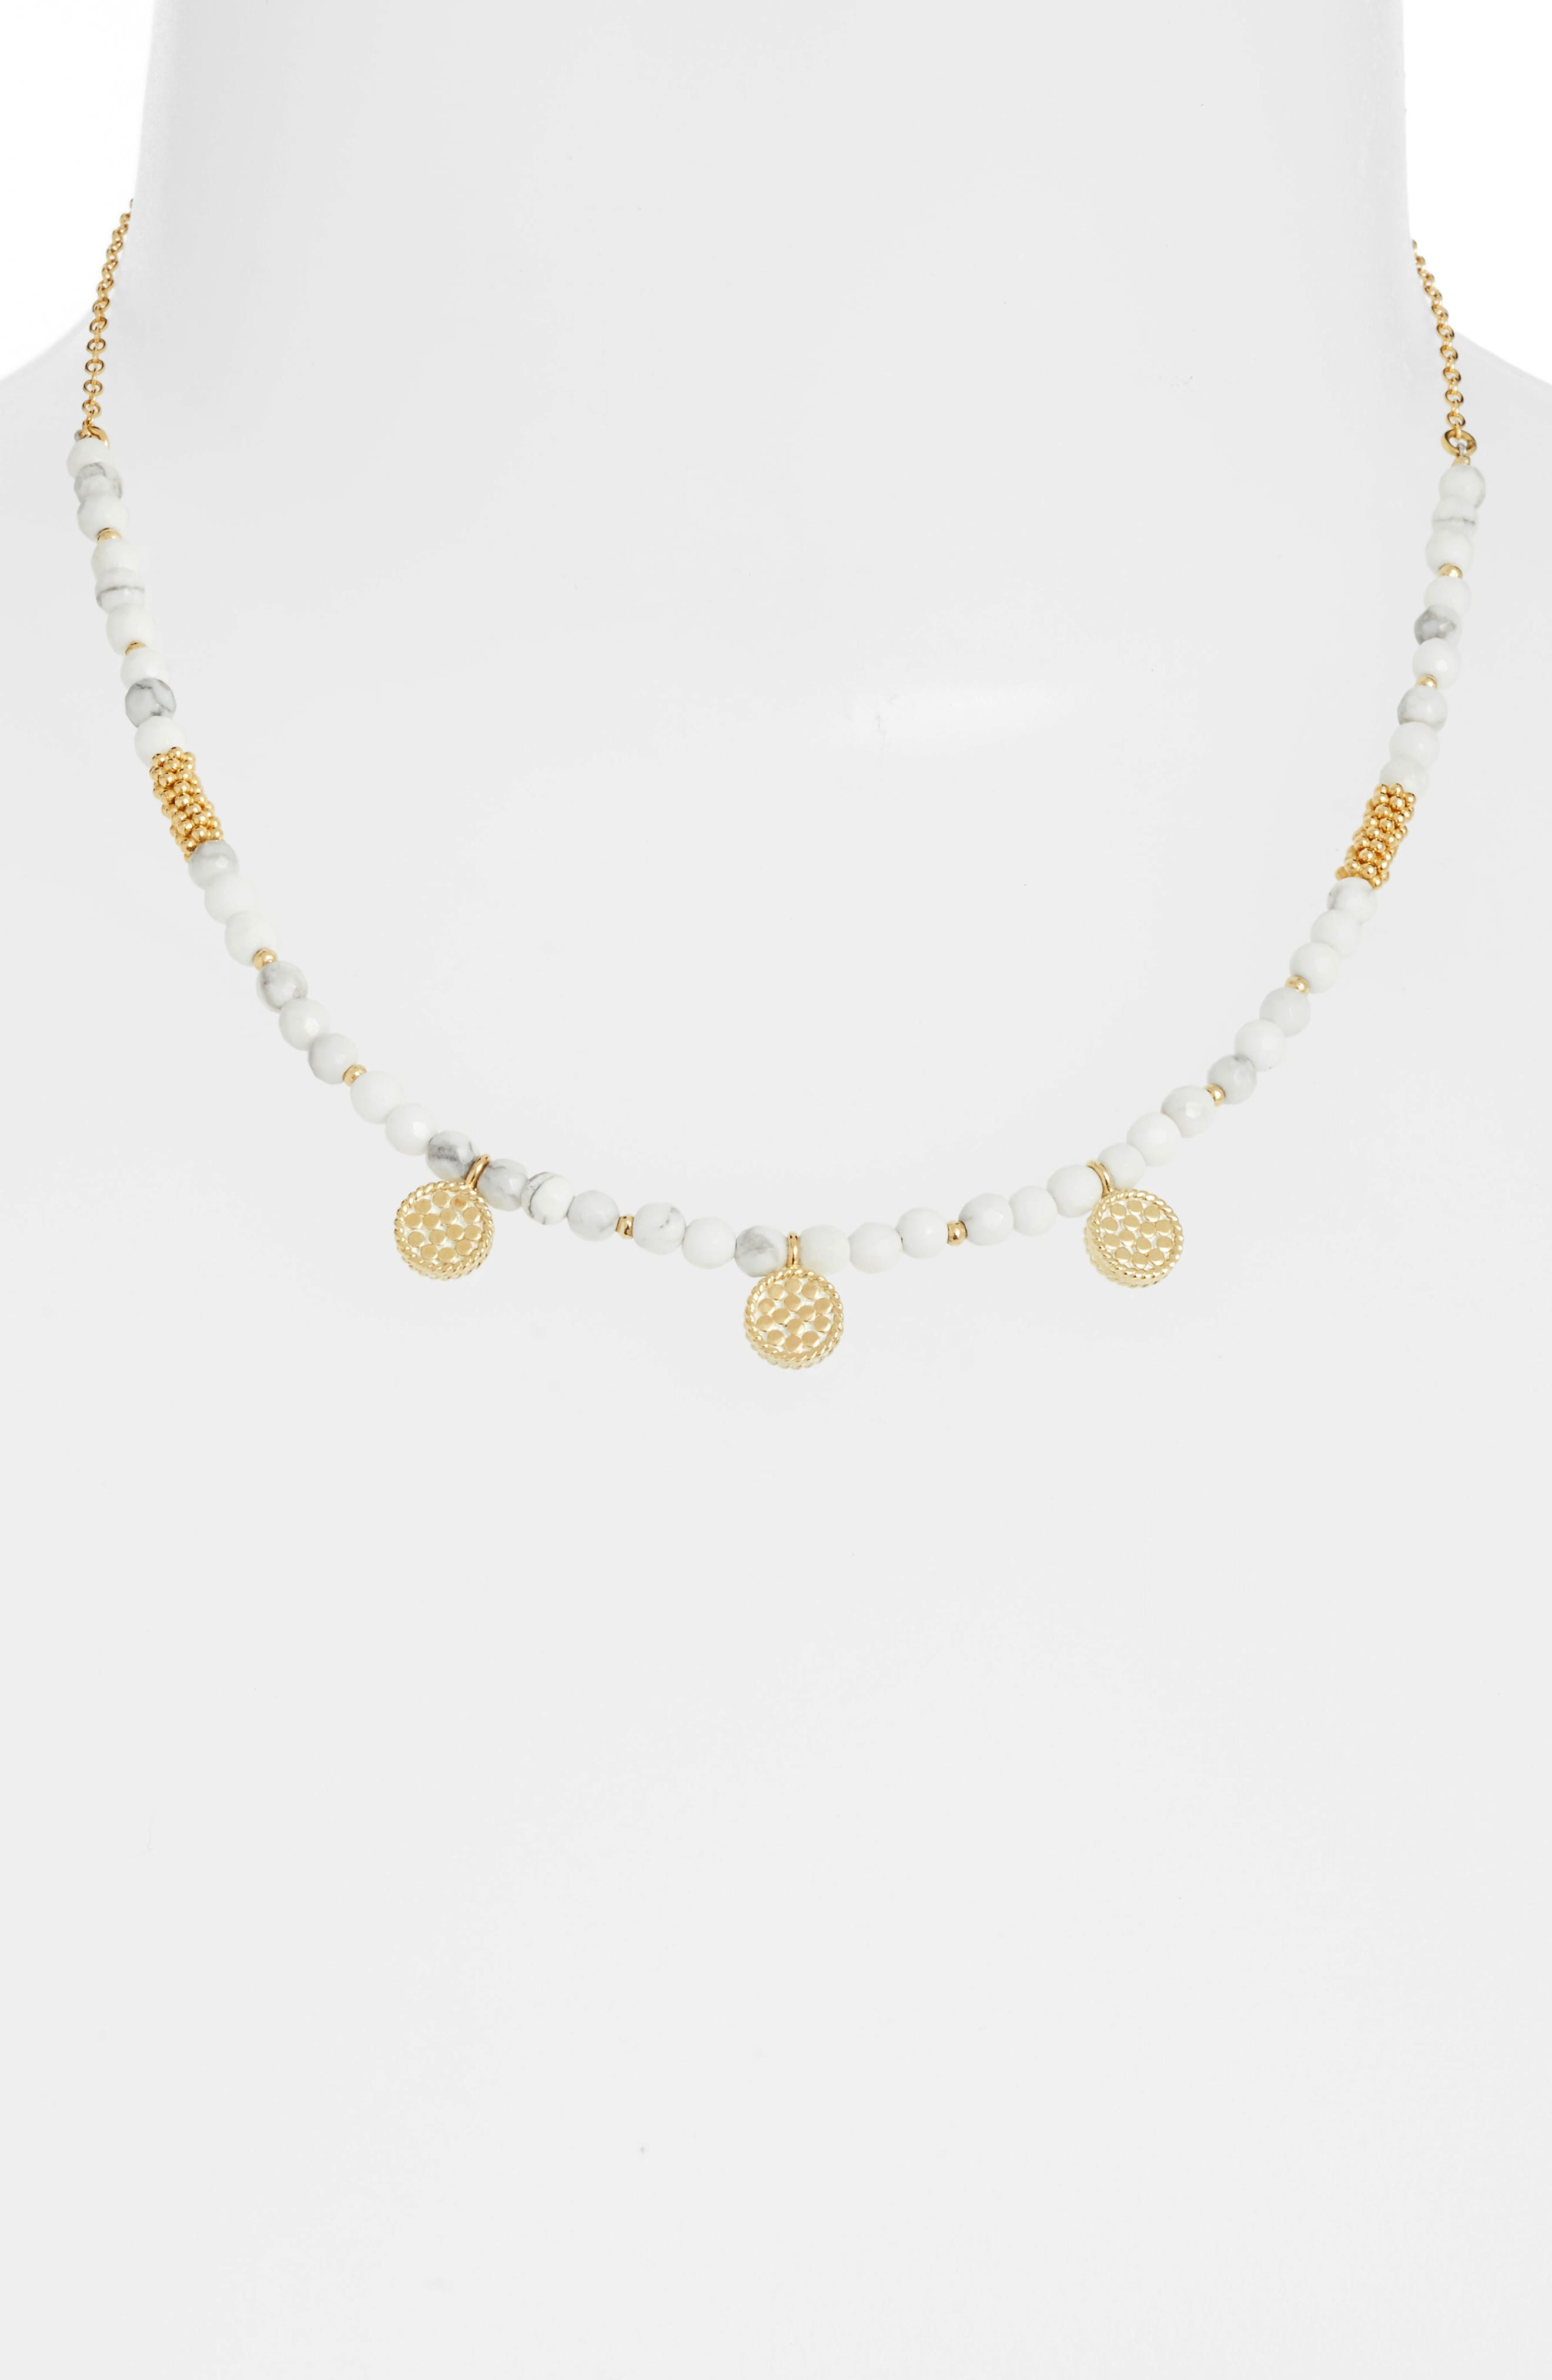 Howlite Beaded Charm Necklace,                         Main,                         color, Gold/ Howlite